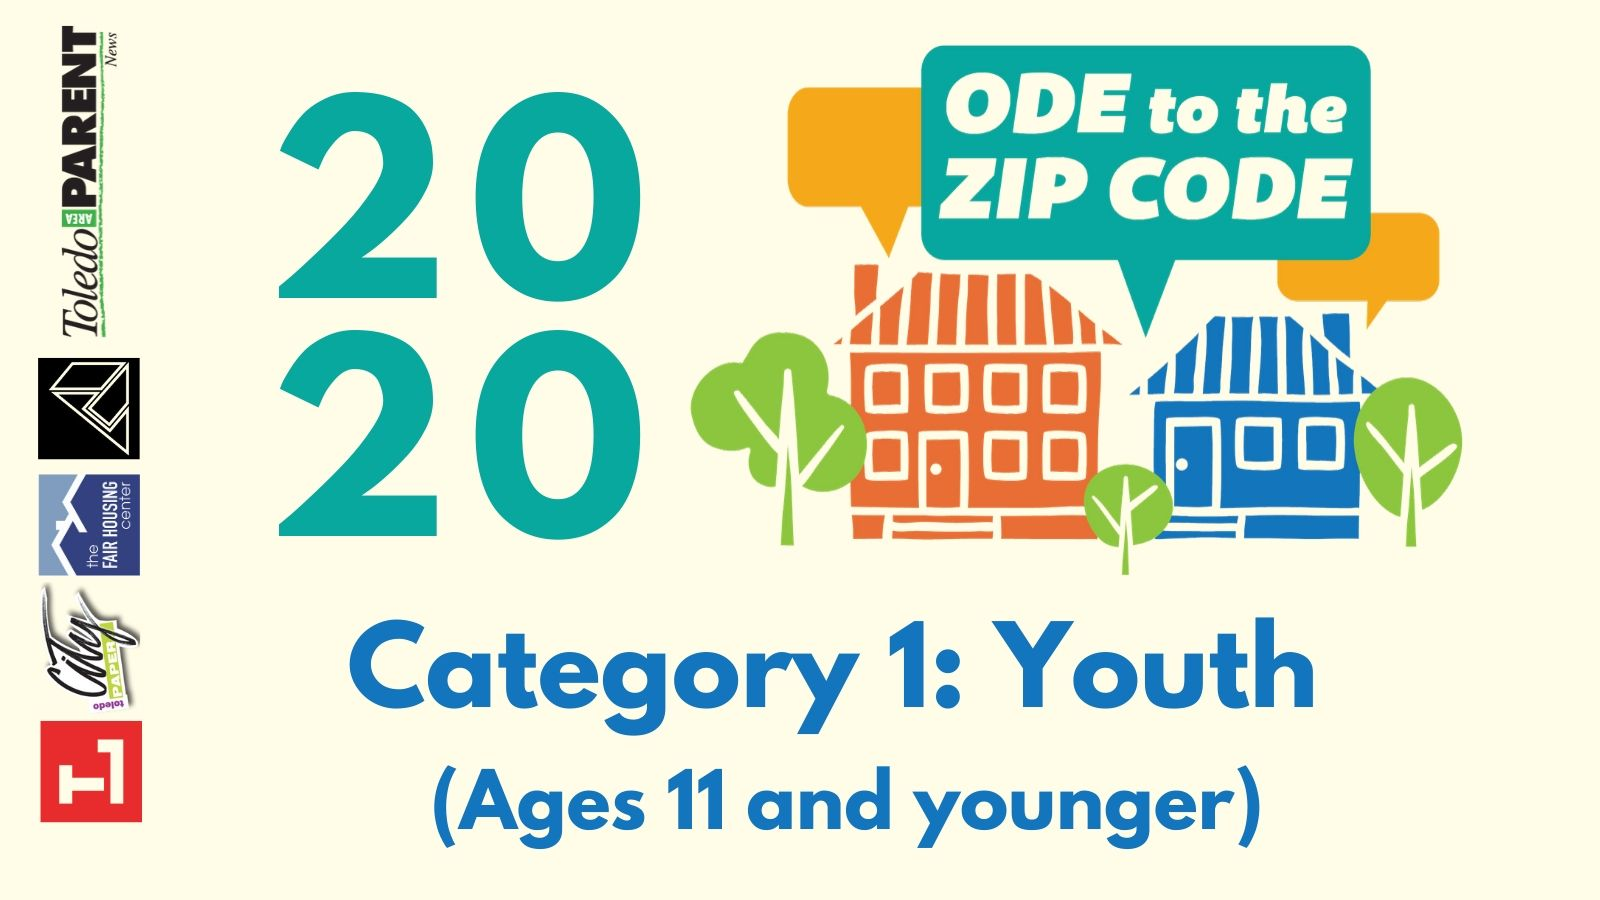 ode to the zip code - youth 1